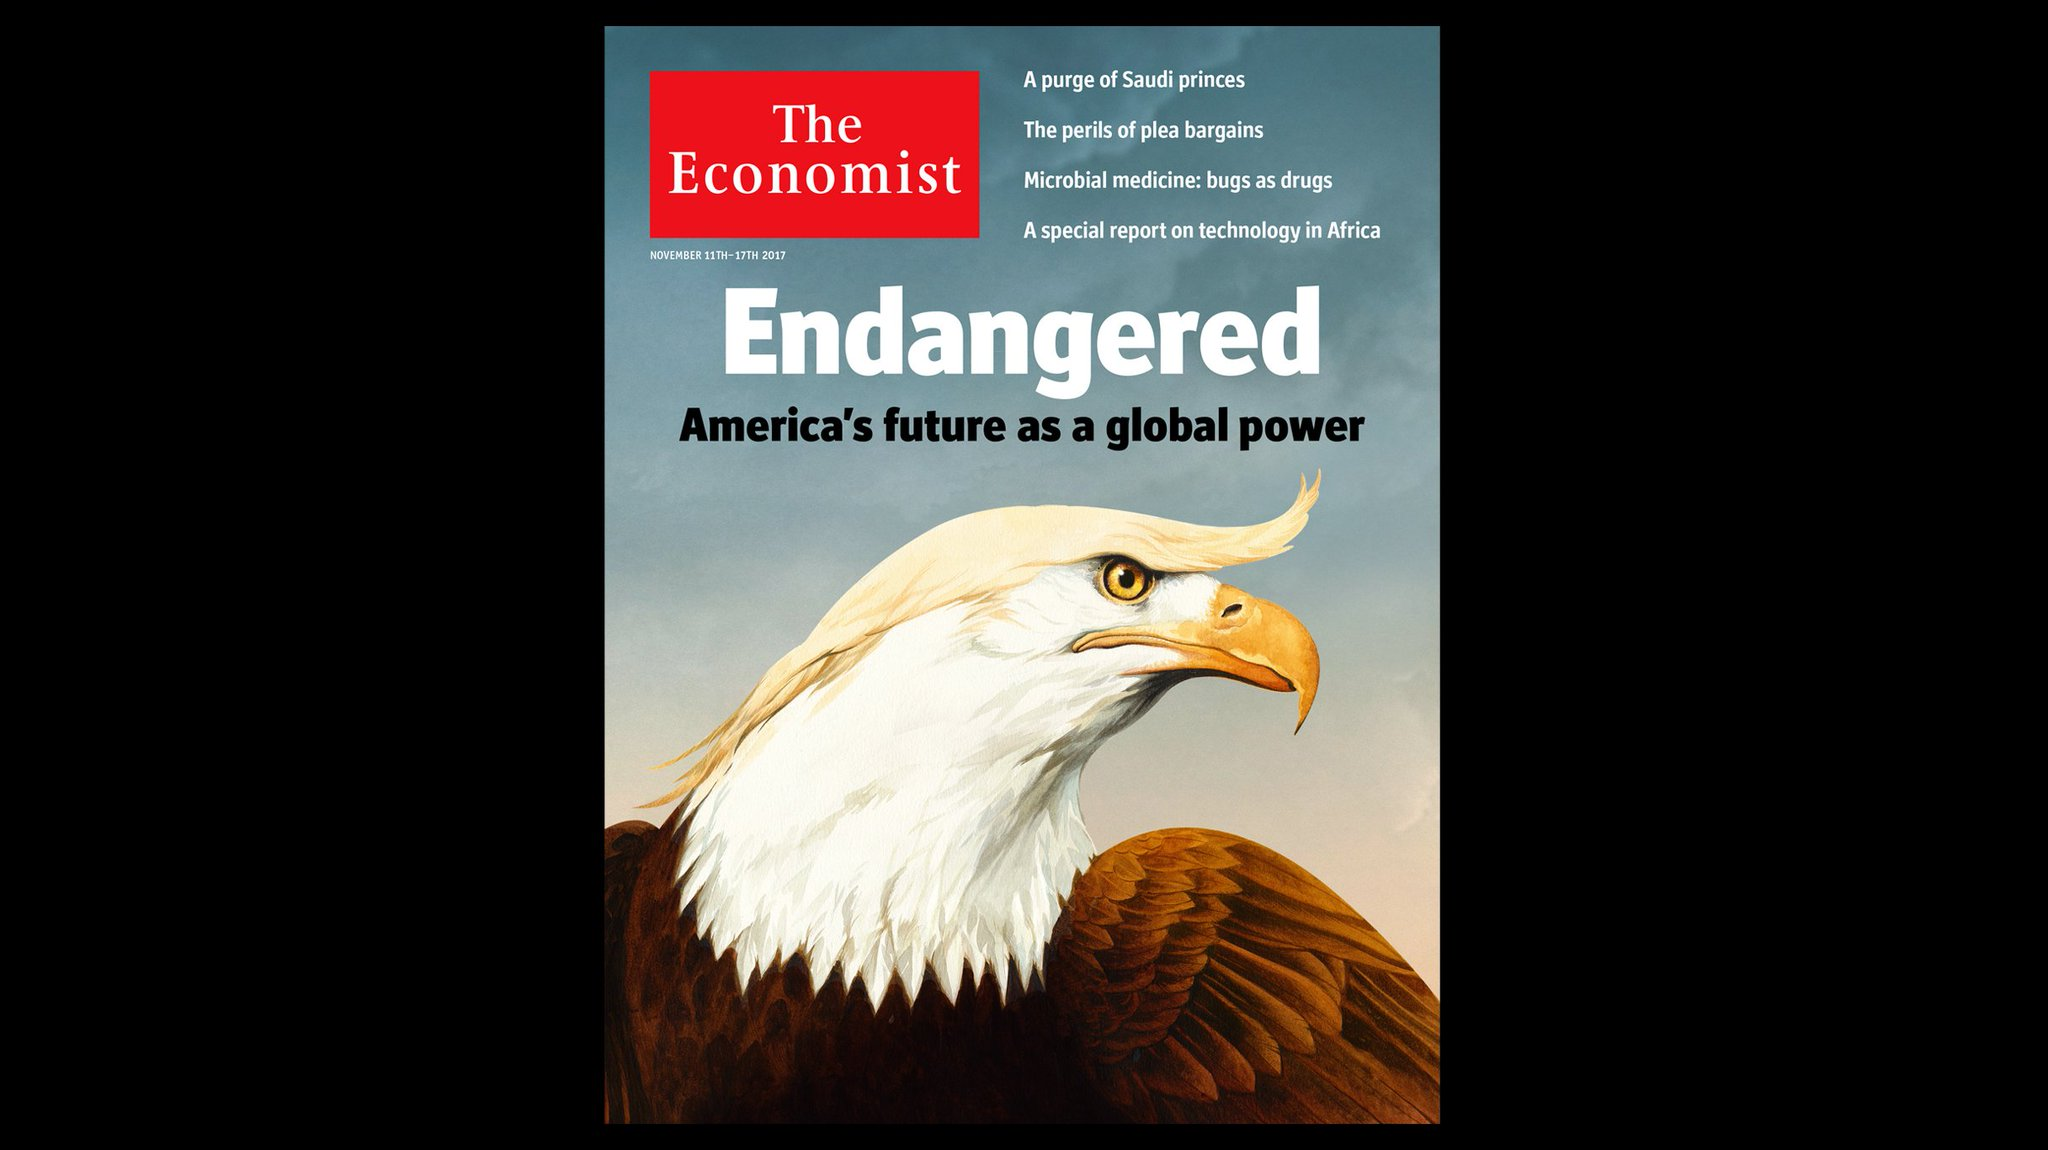 American influence has dwindled under Donald Trump. It will not be simple to restore. Our cover this week https://t.co/QQk06D247z